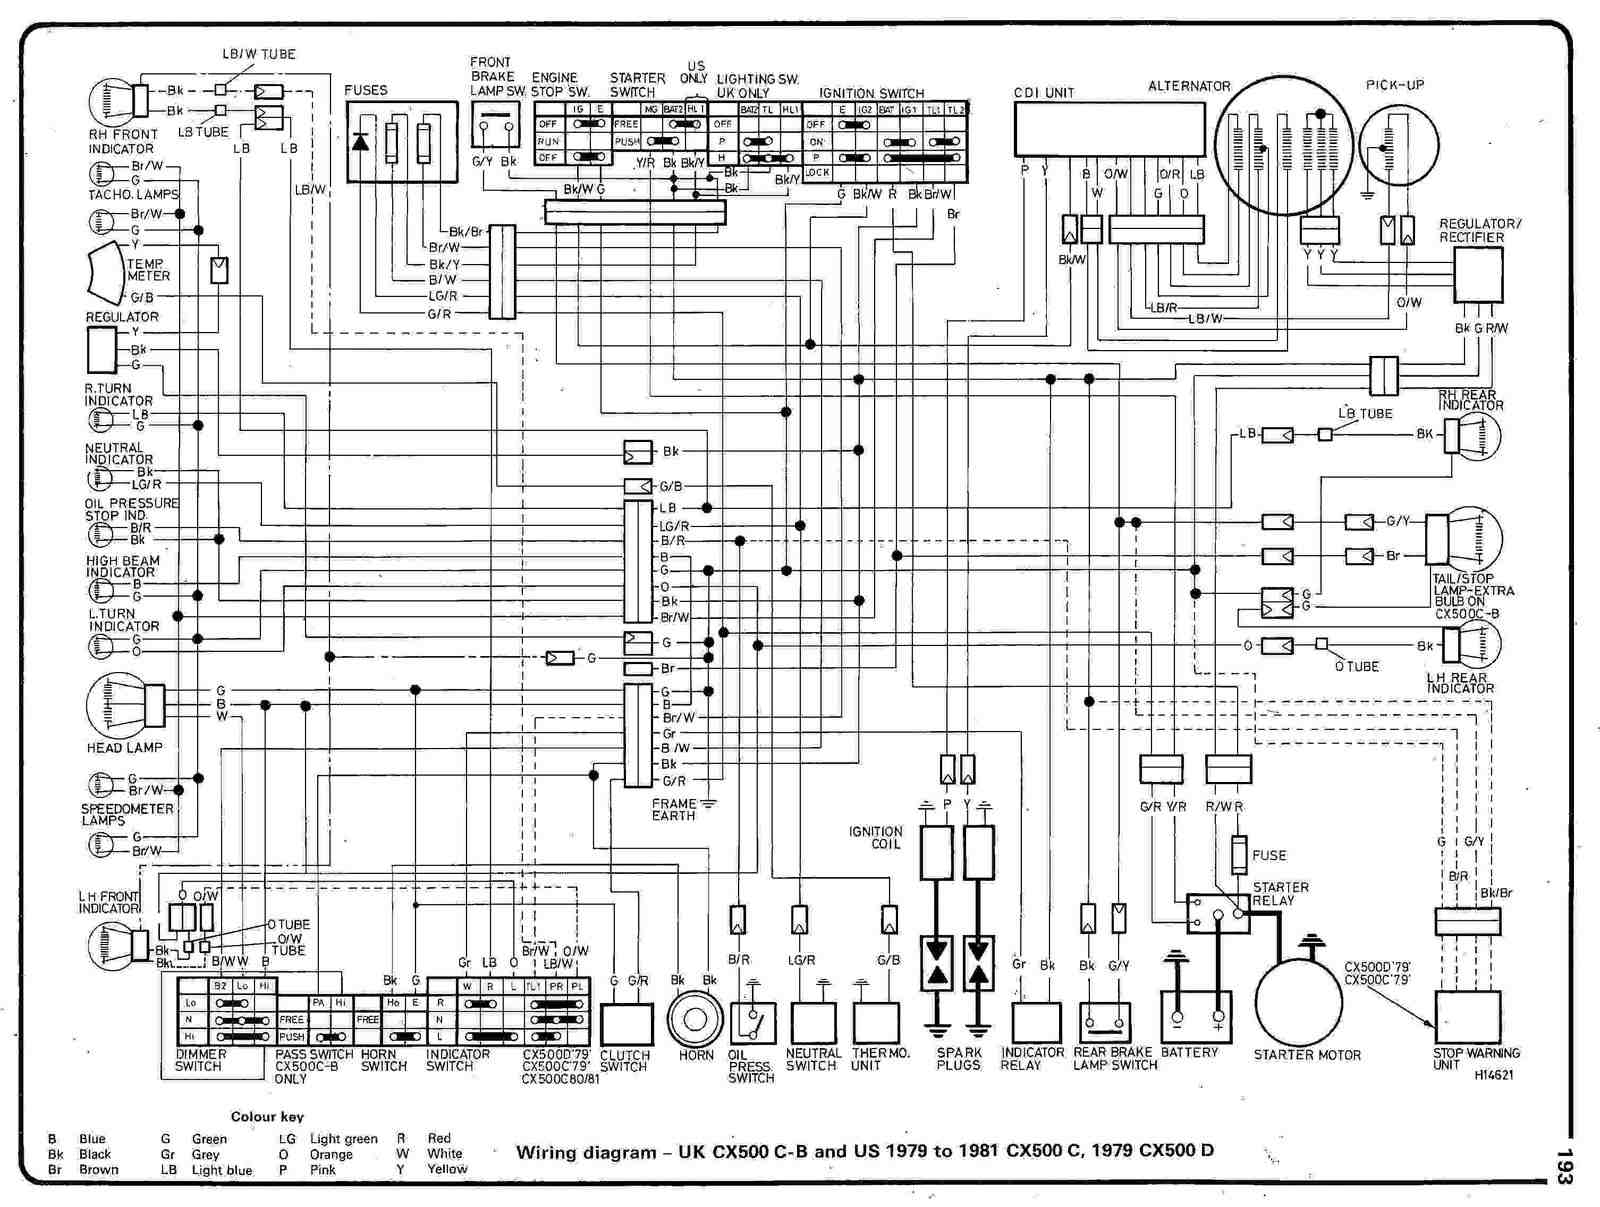 crazy wiring diagram wiring diagrams light wiring diagram crazy wire diagram wiring diagrams scematic automotive wiring [ 1600 x 1207 Pixel ]